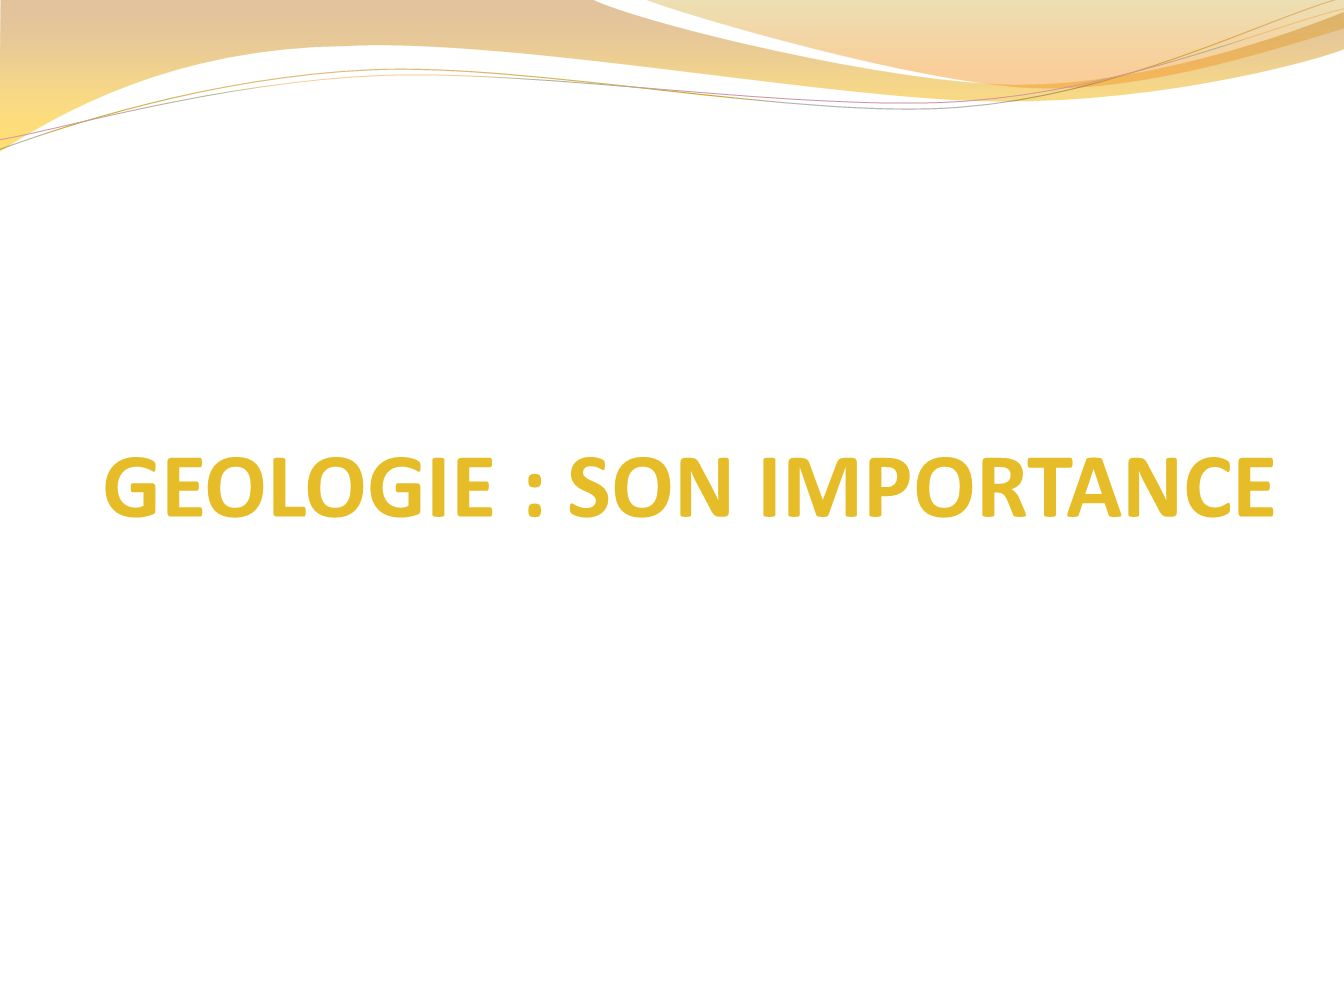 GEOLOGIE : SON IMPORTANCE